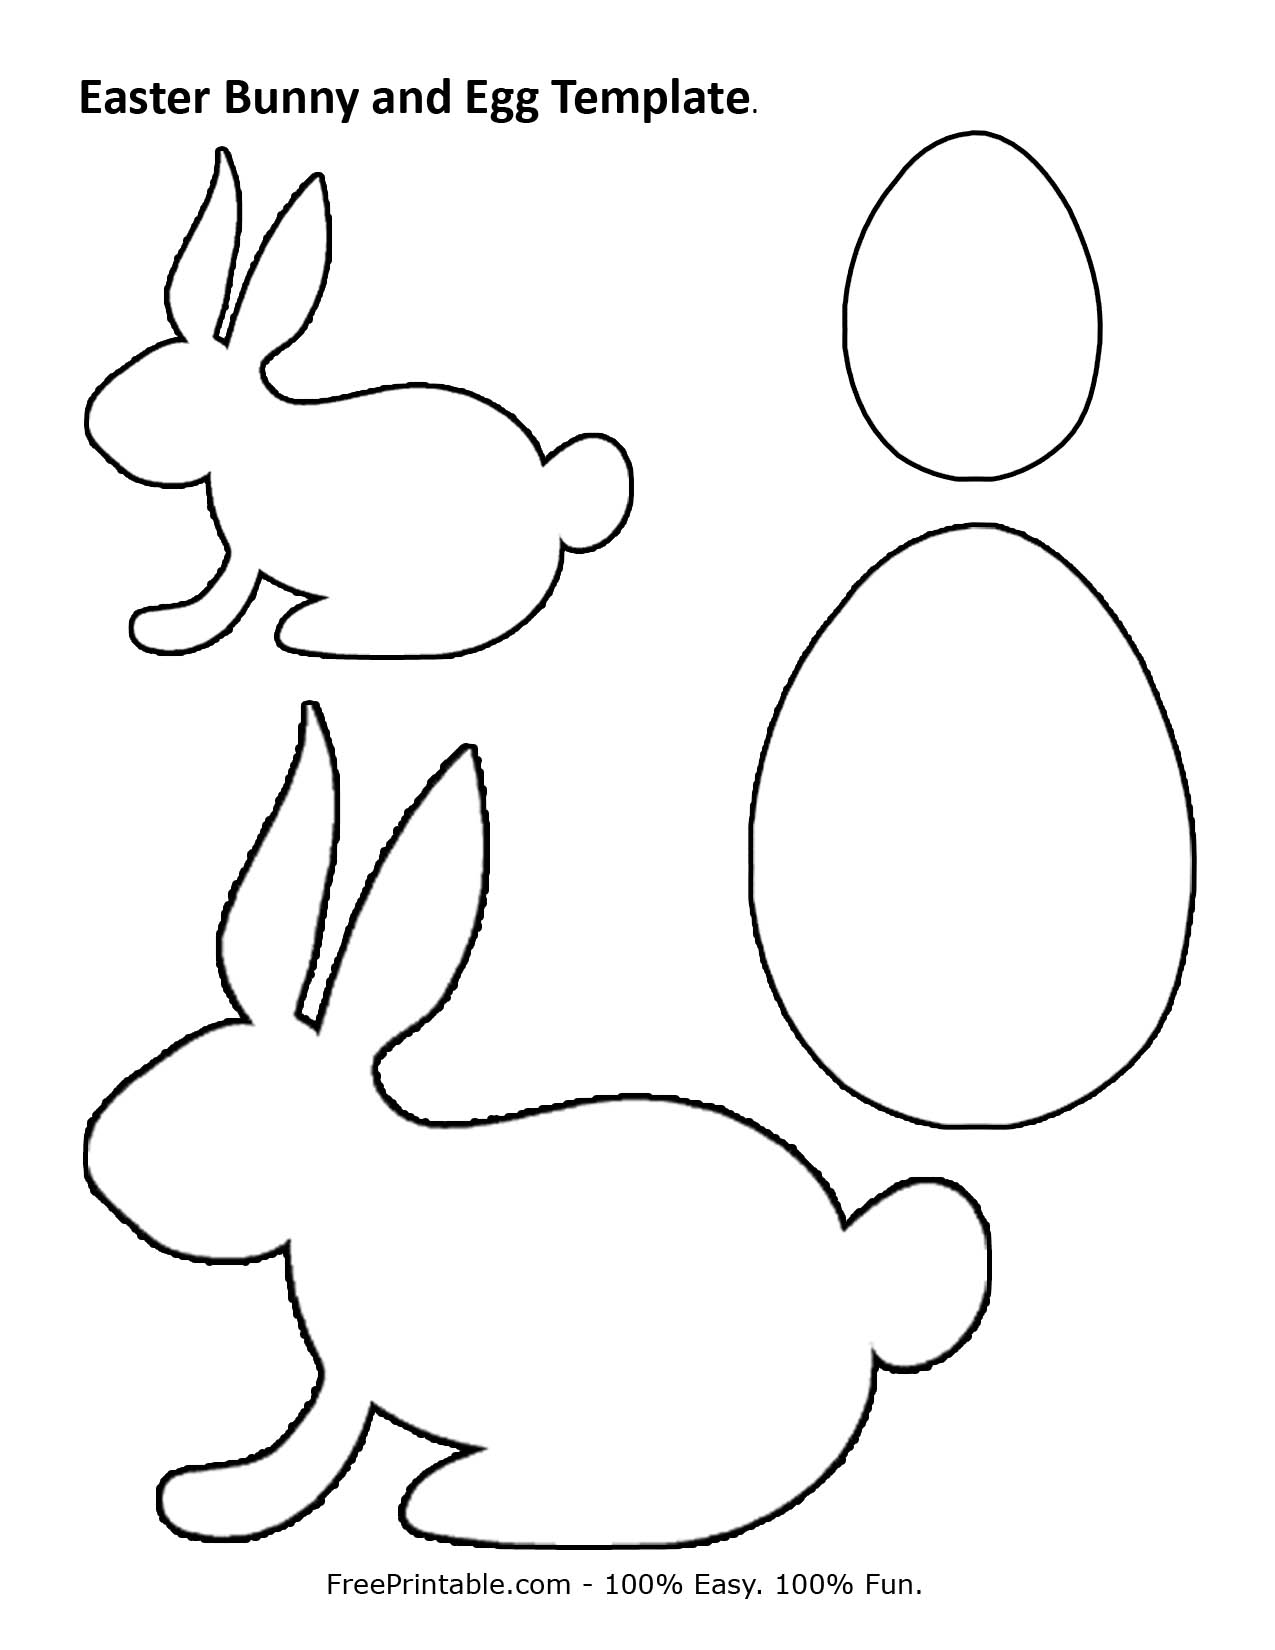 Easter-bunny-and-egg-template